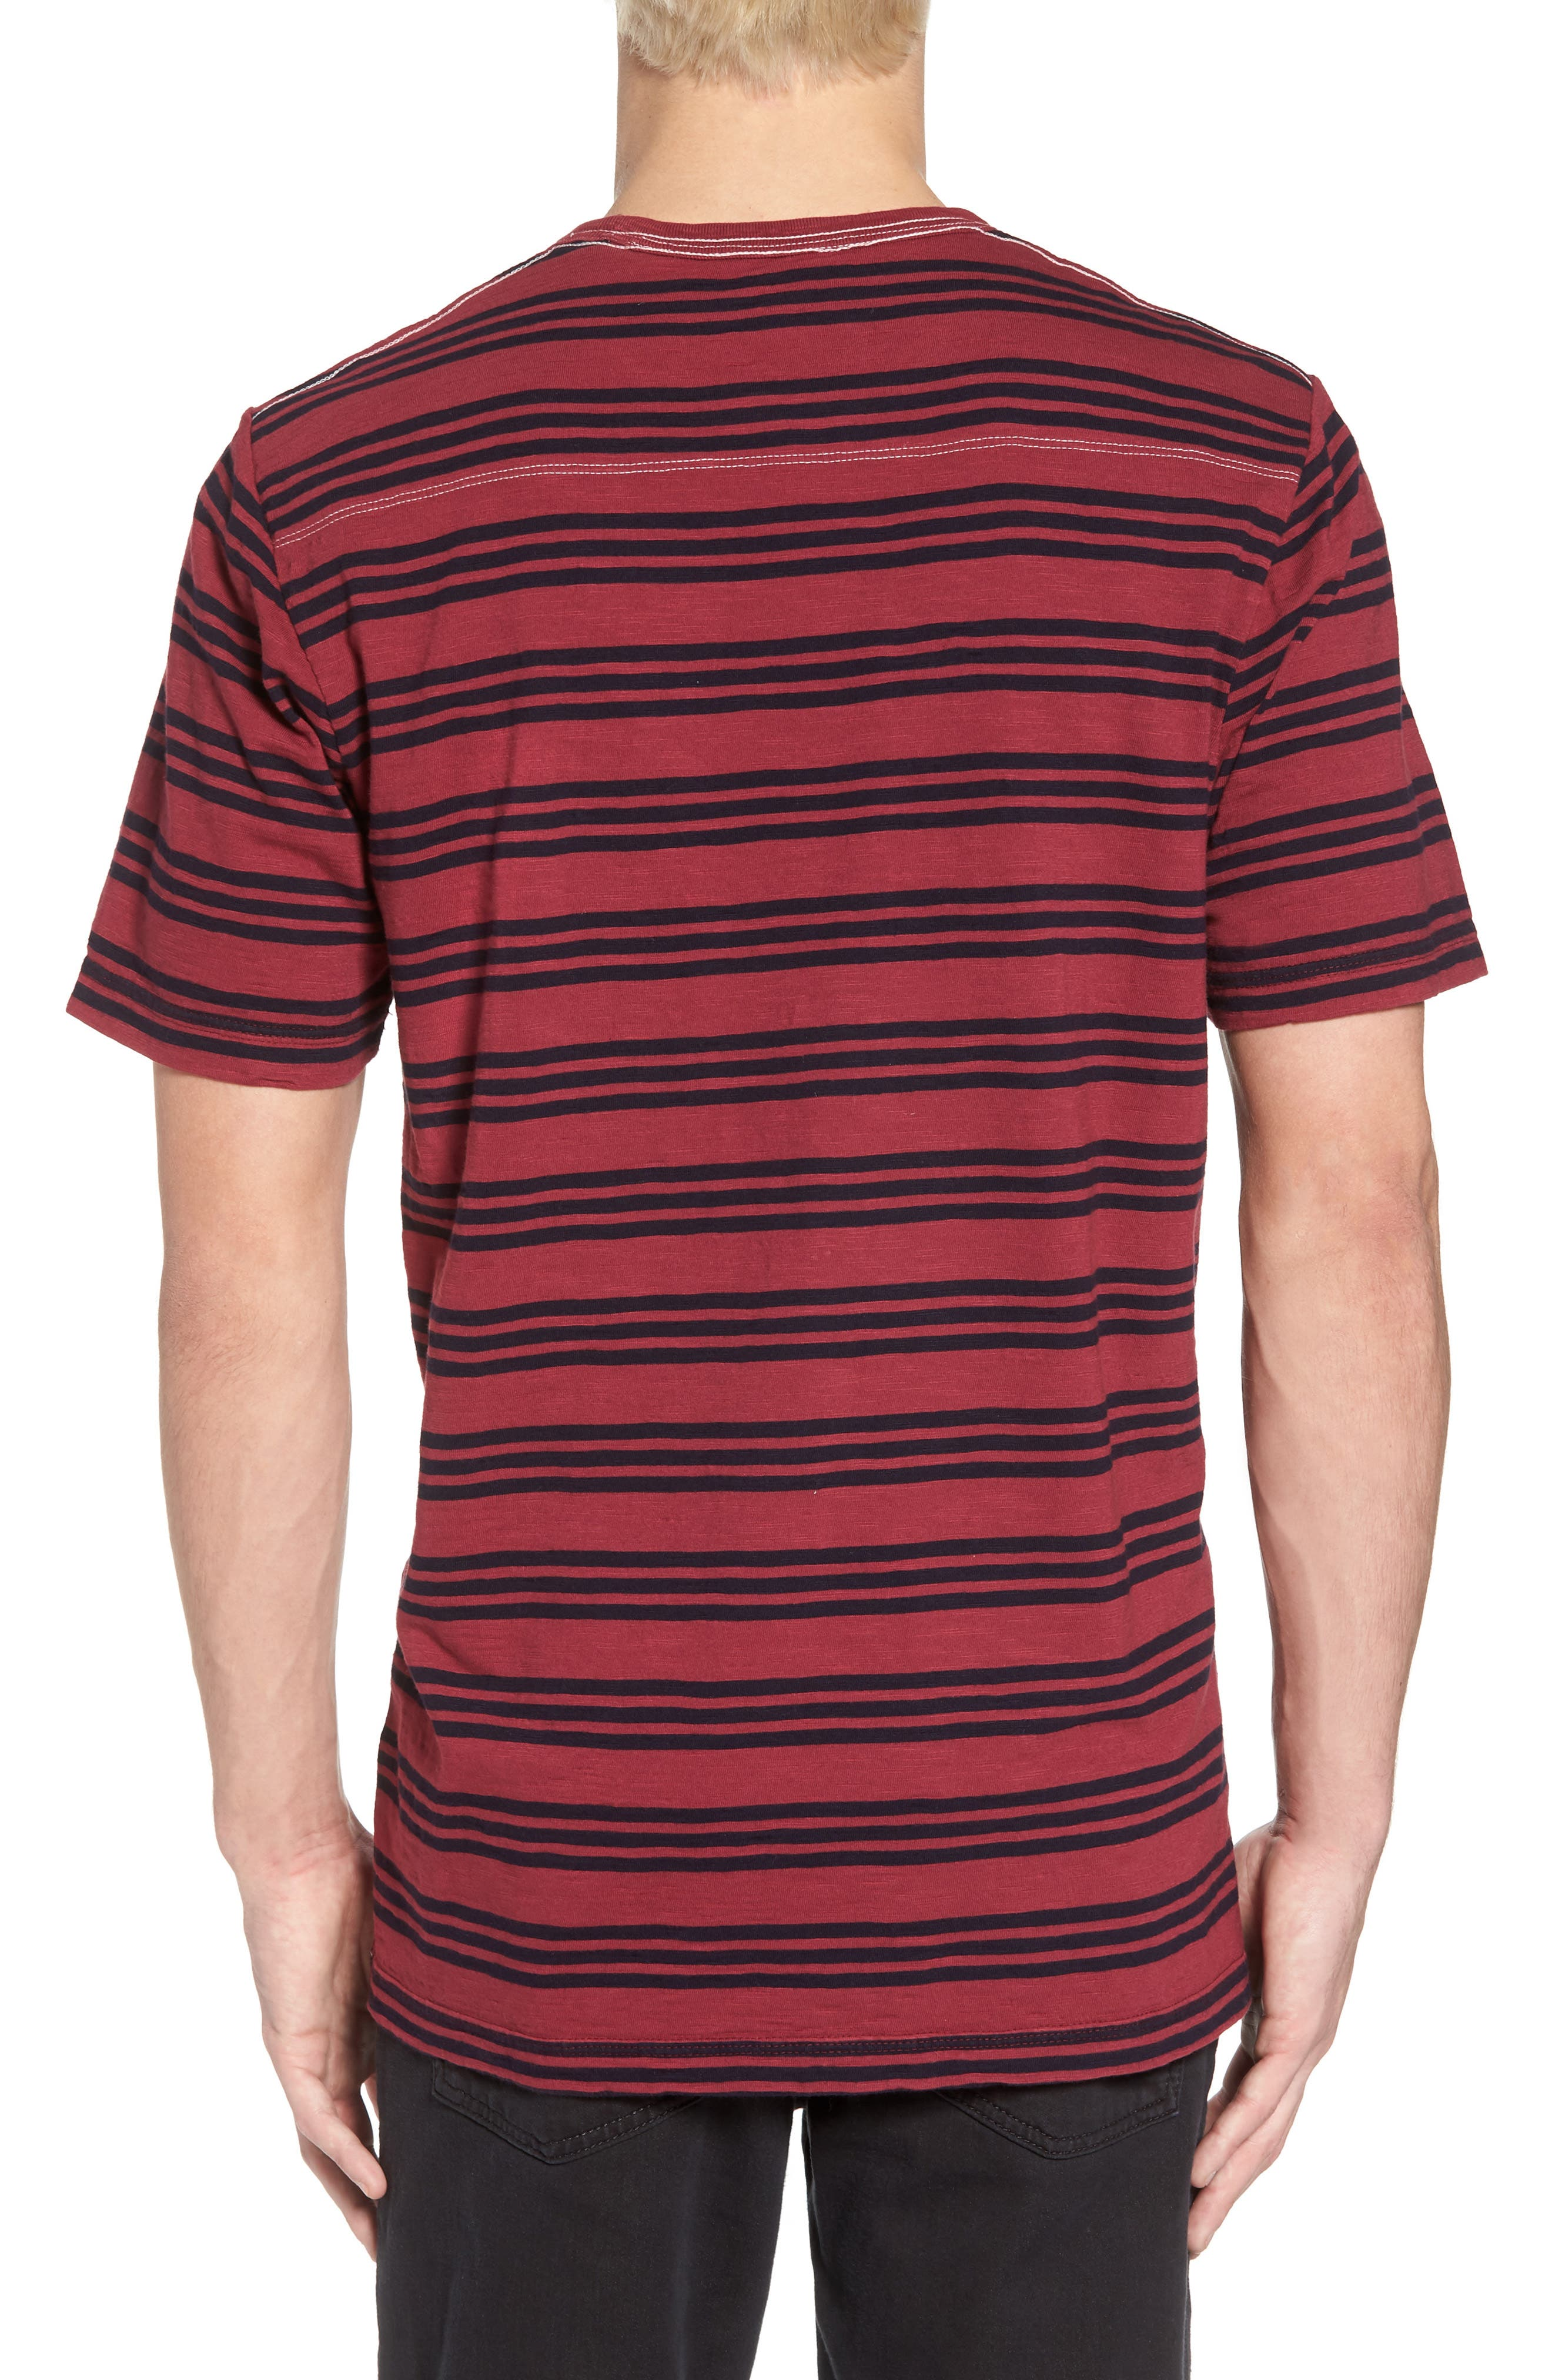 Alternate Image 2  - French Connection Triple Stripe Garment Dyed T-Shirt